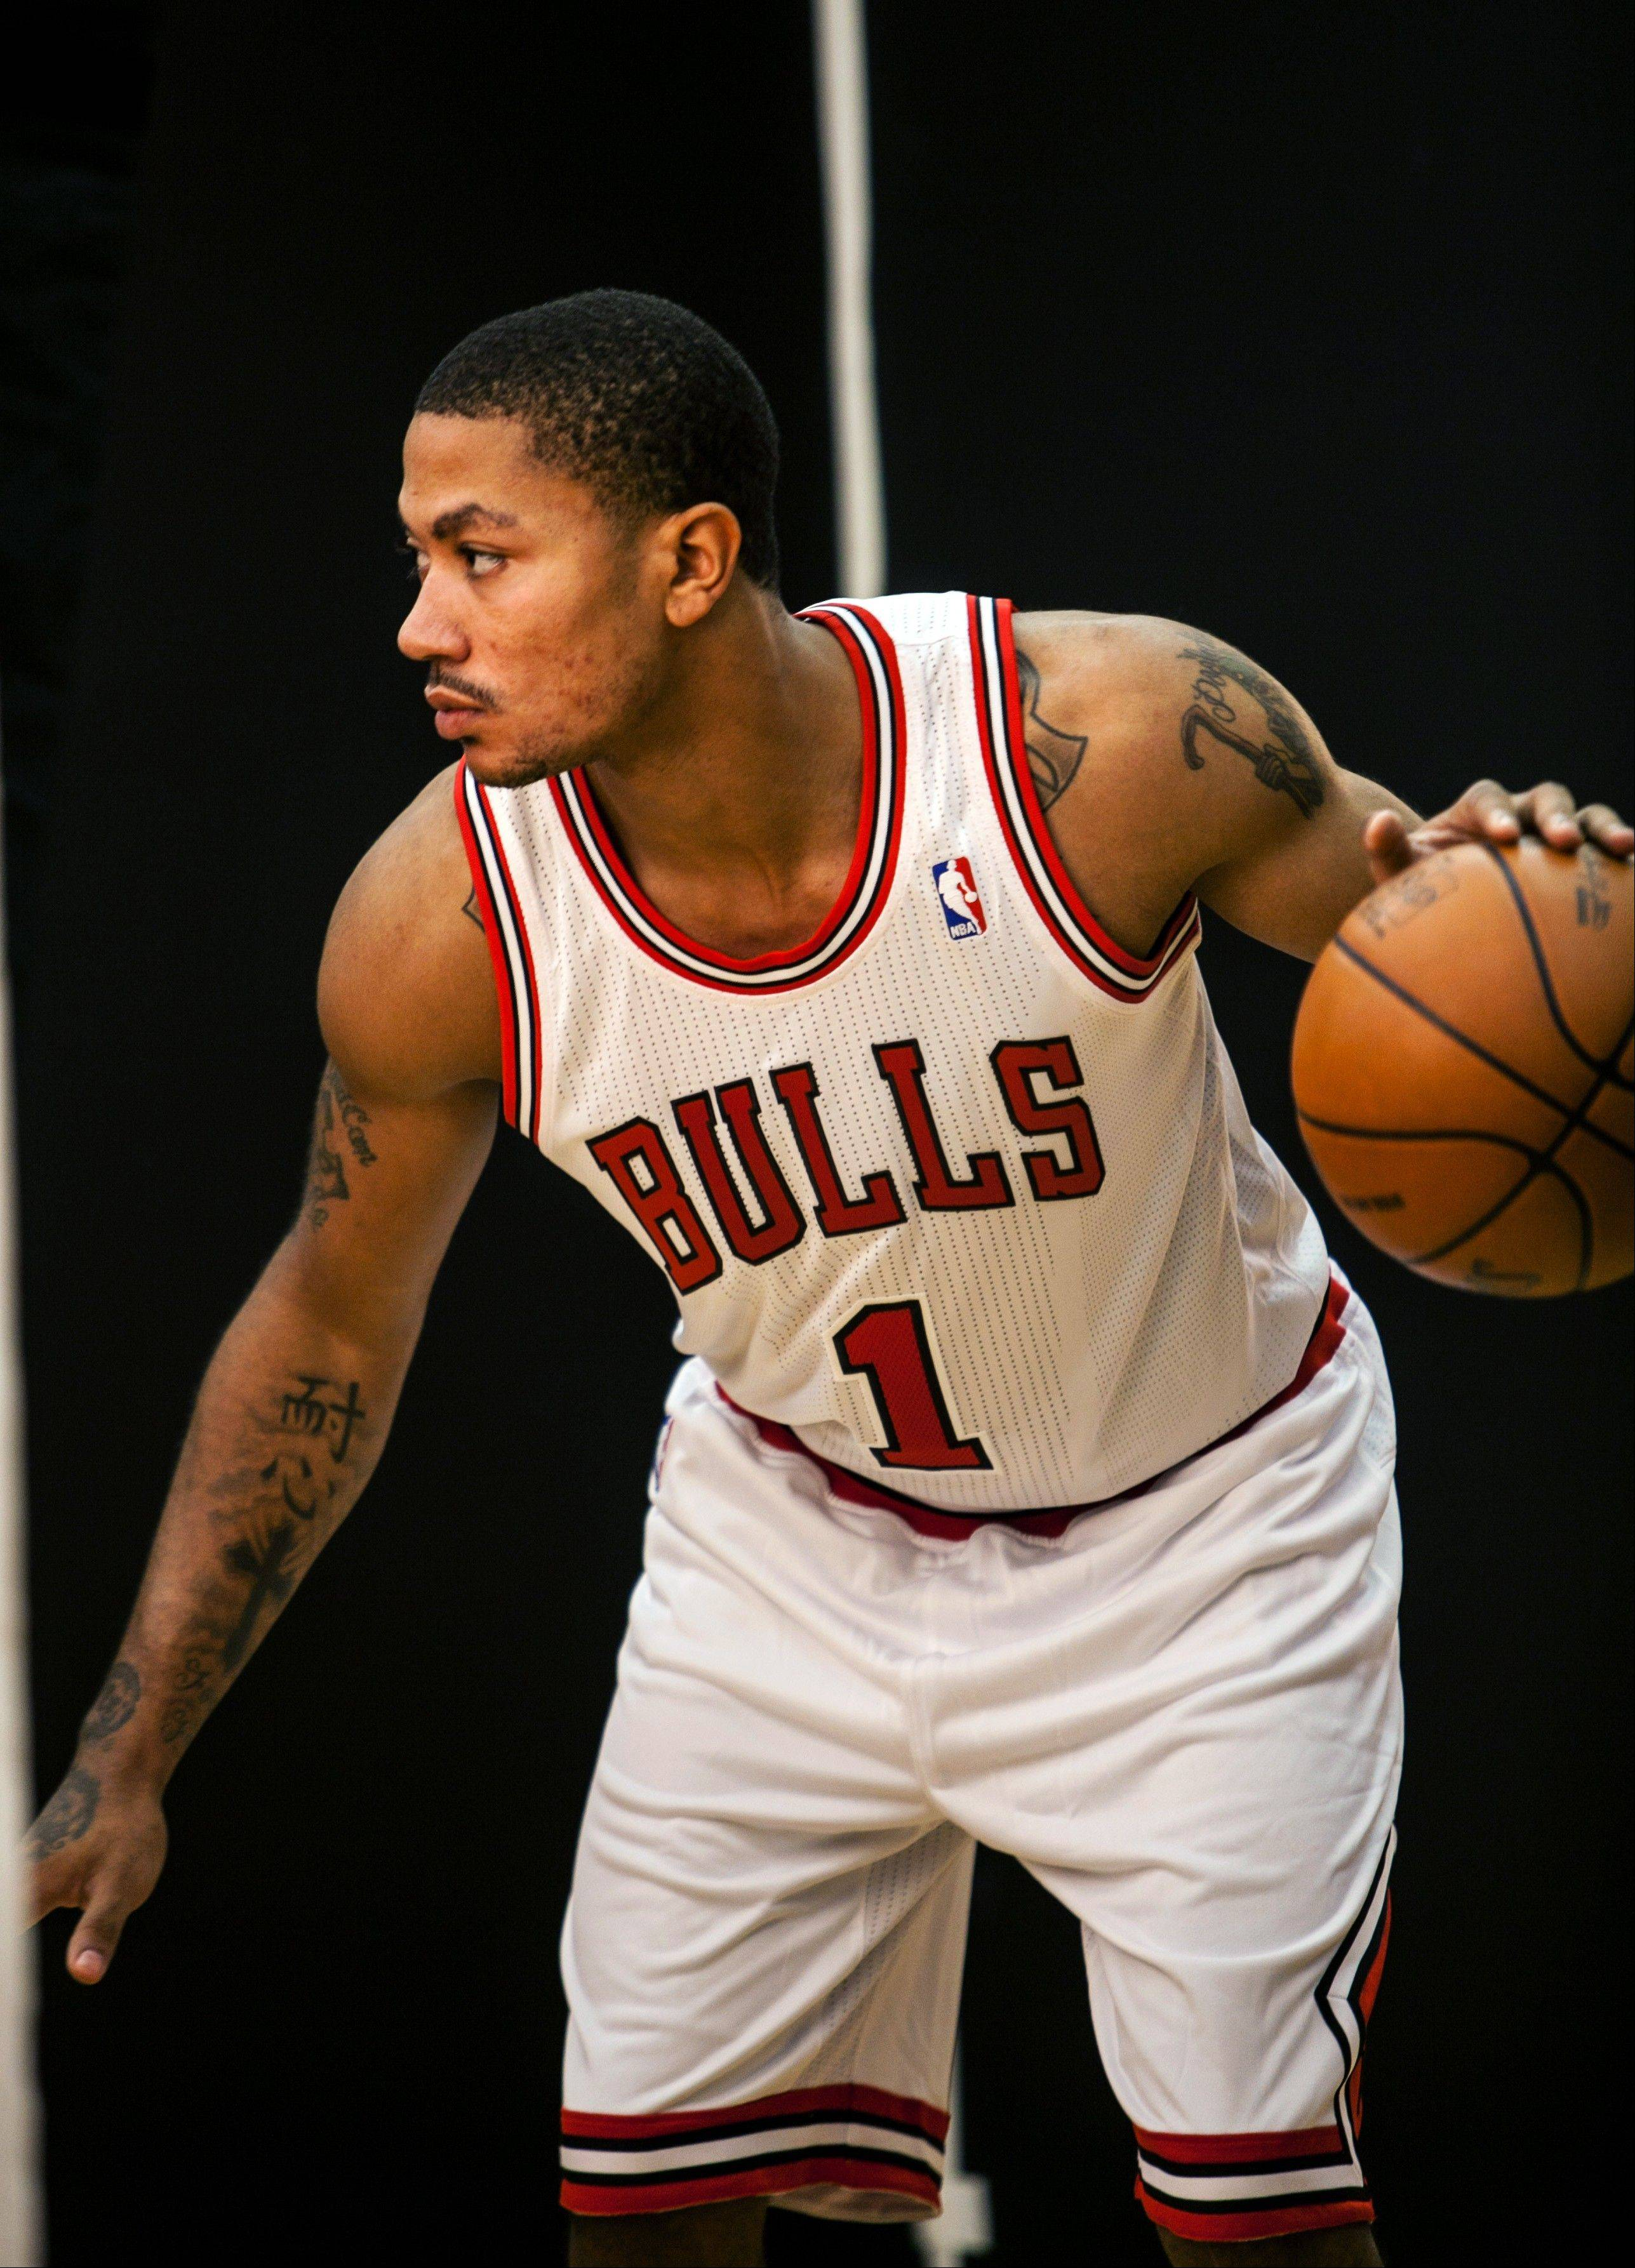 The Bulls� Derrick Rose poses for pictures during the NBA basketball team�s media day Monday in Deerfield.